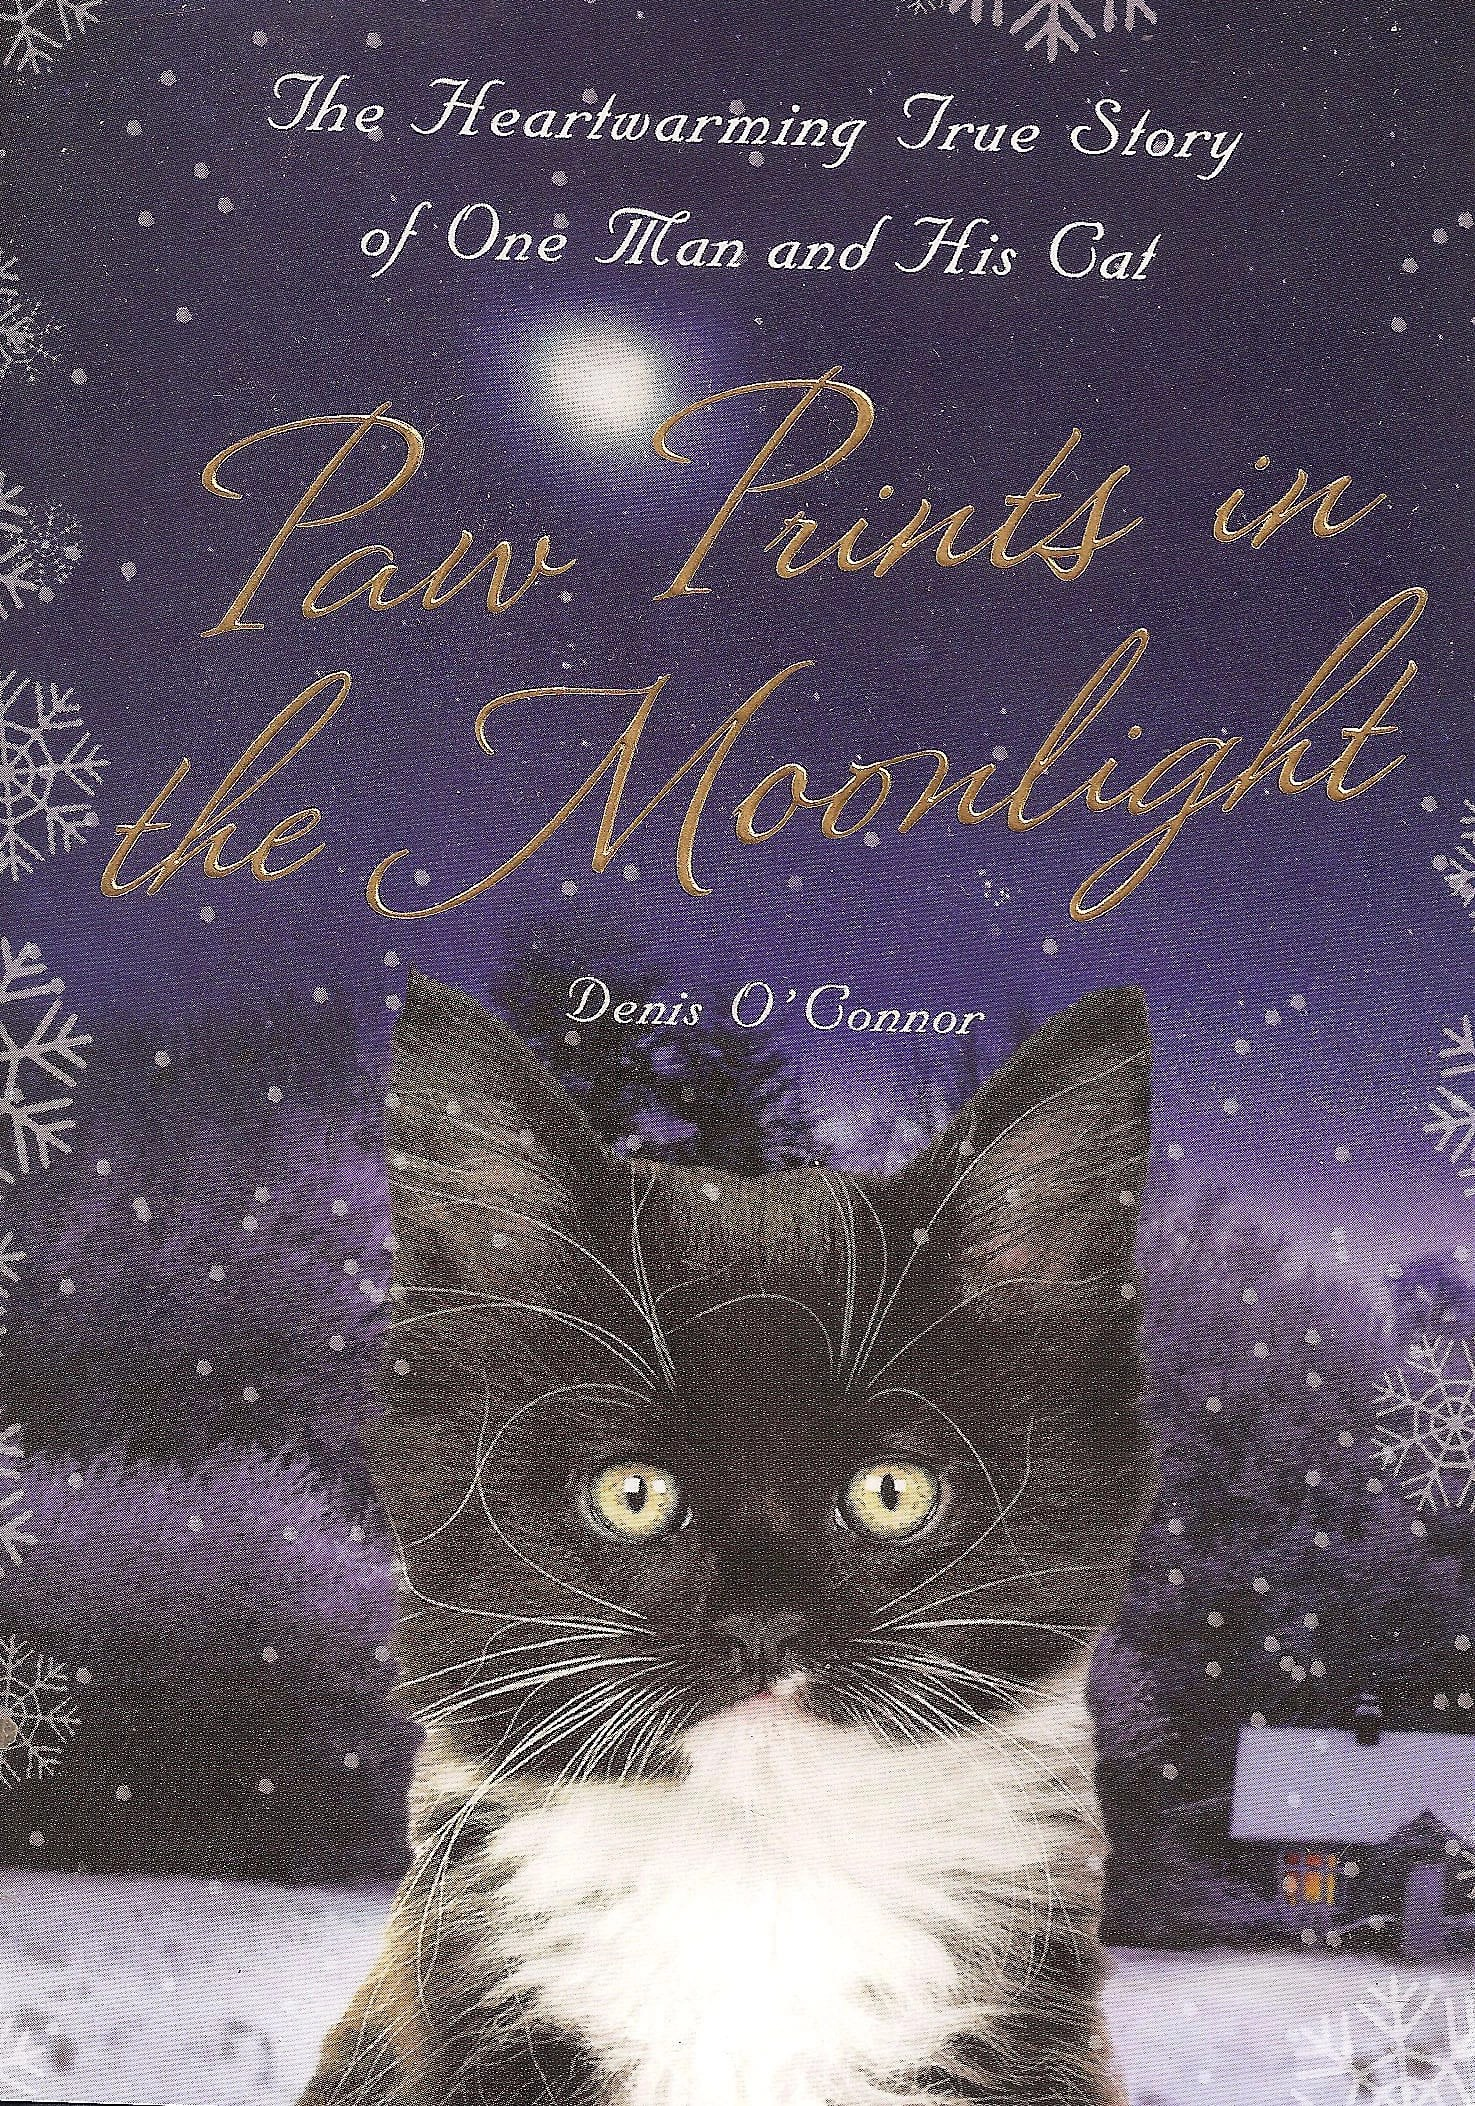 16723cd65b Paw Prints in the Moonlight tells how cats become our best friends ...